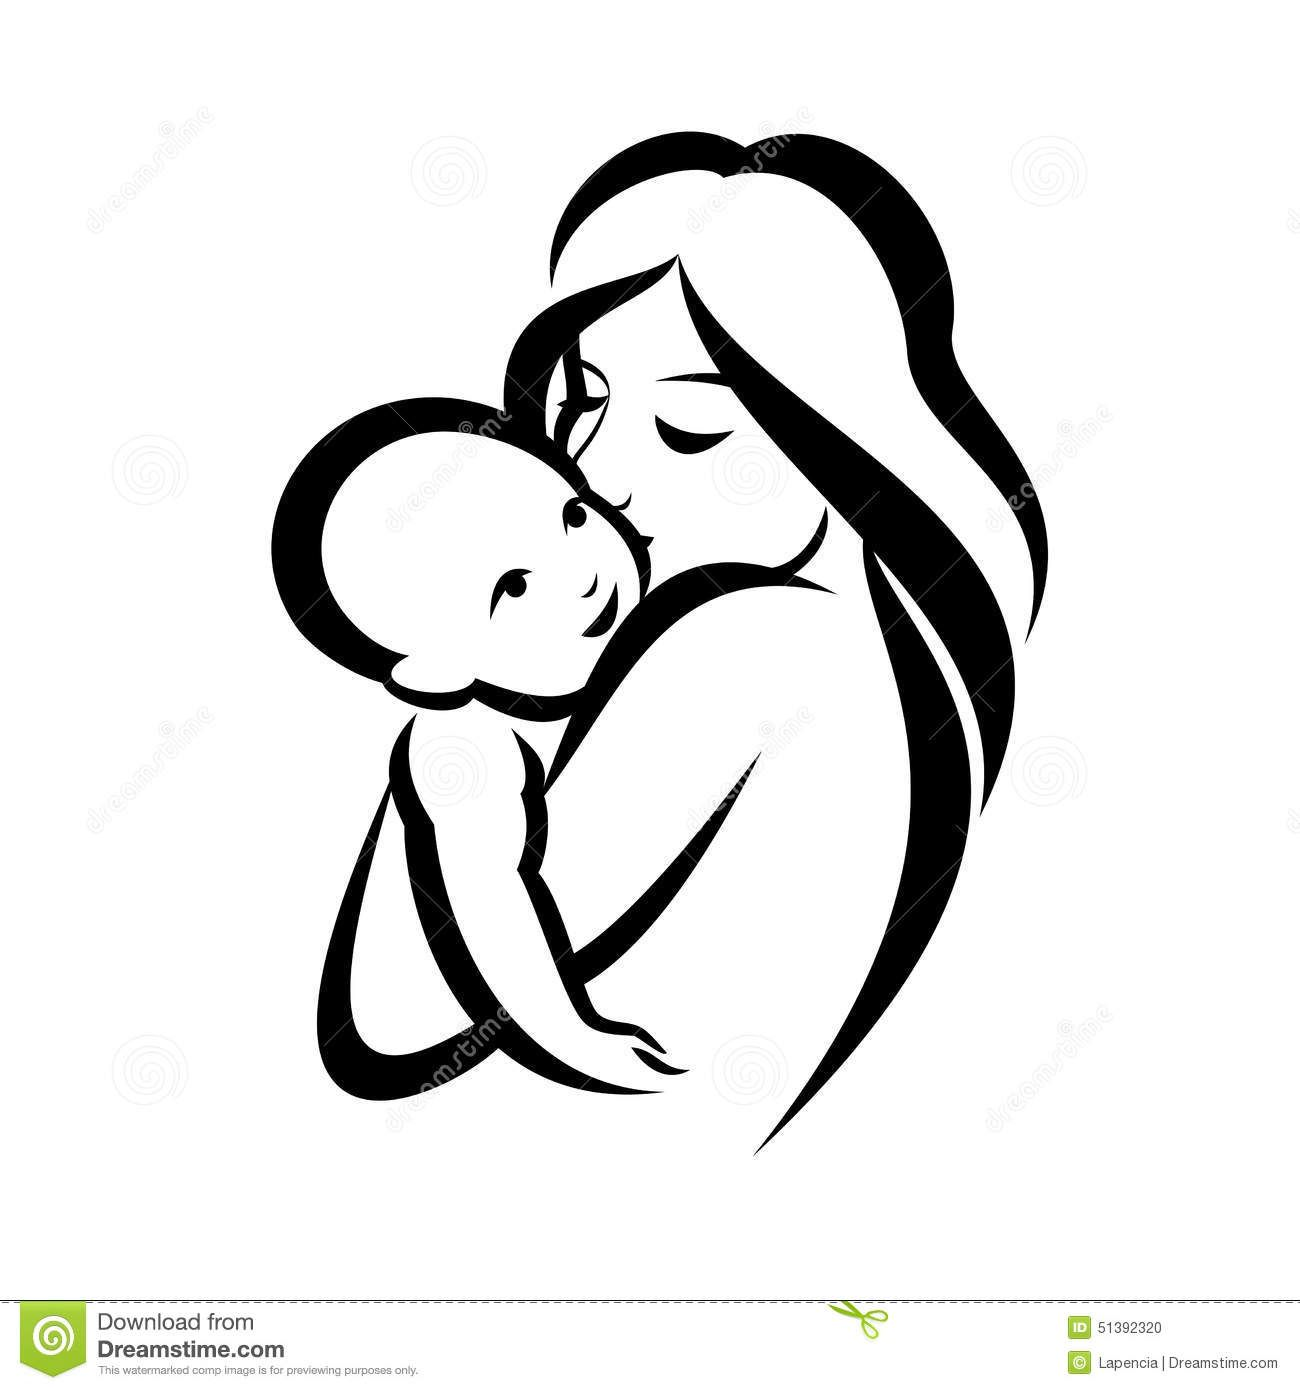 Love The Mother Child Silhouette: Download From Over 55 Million